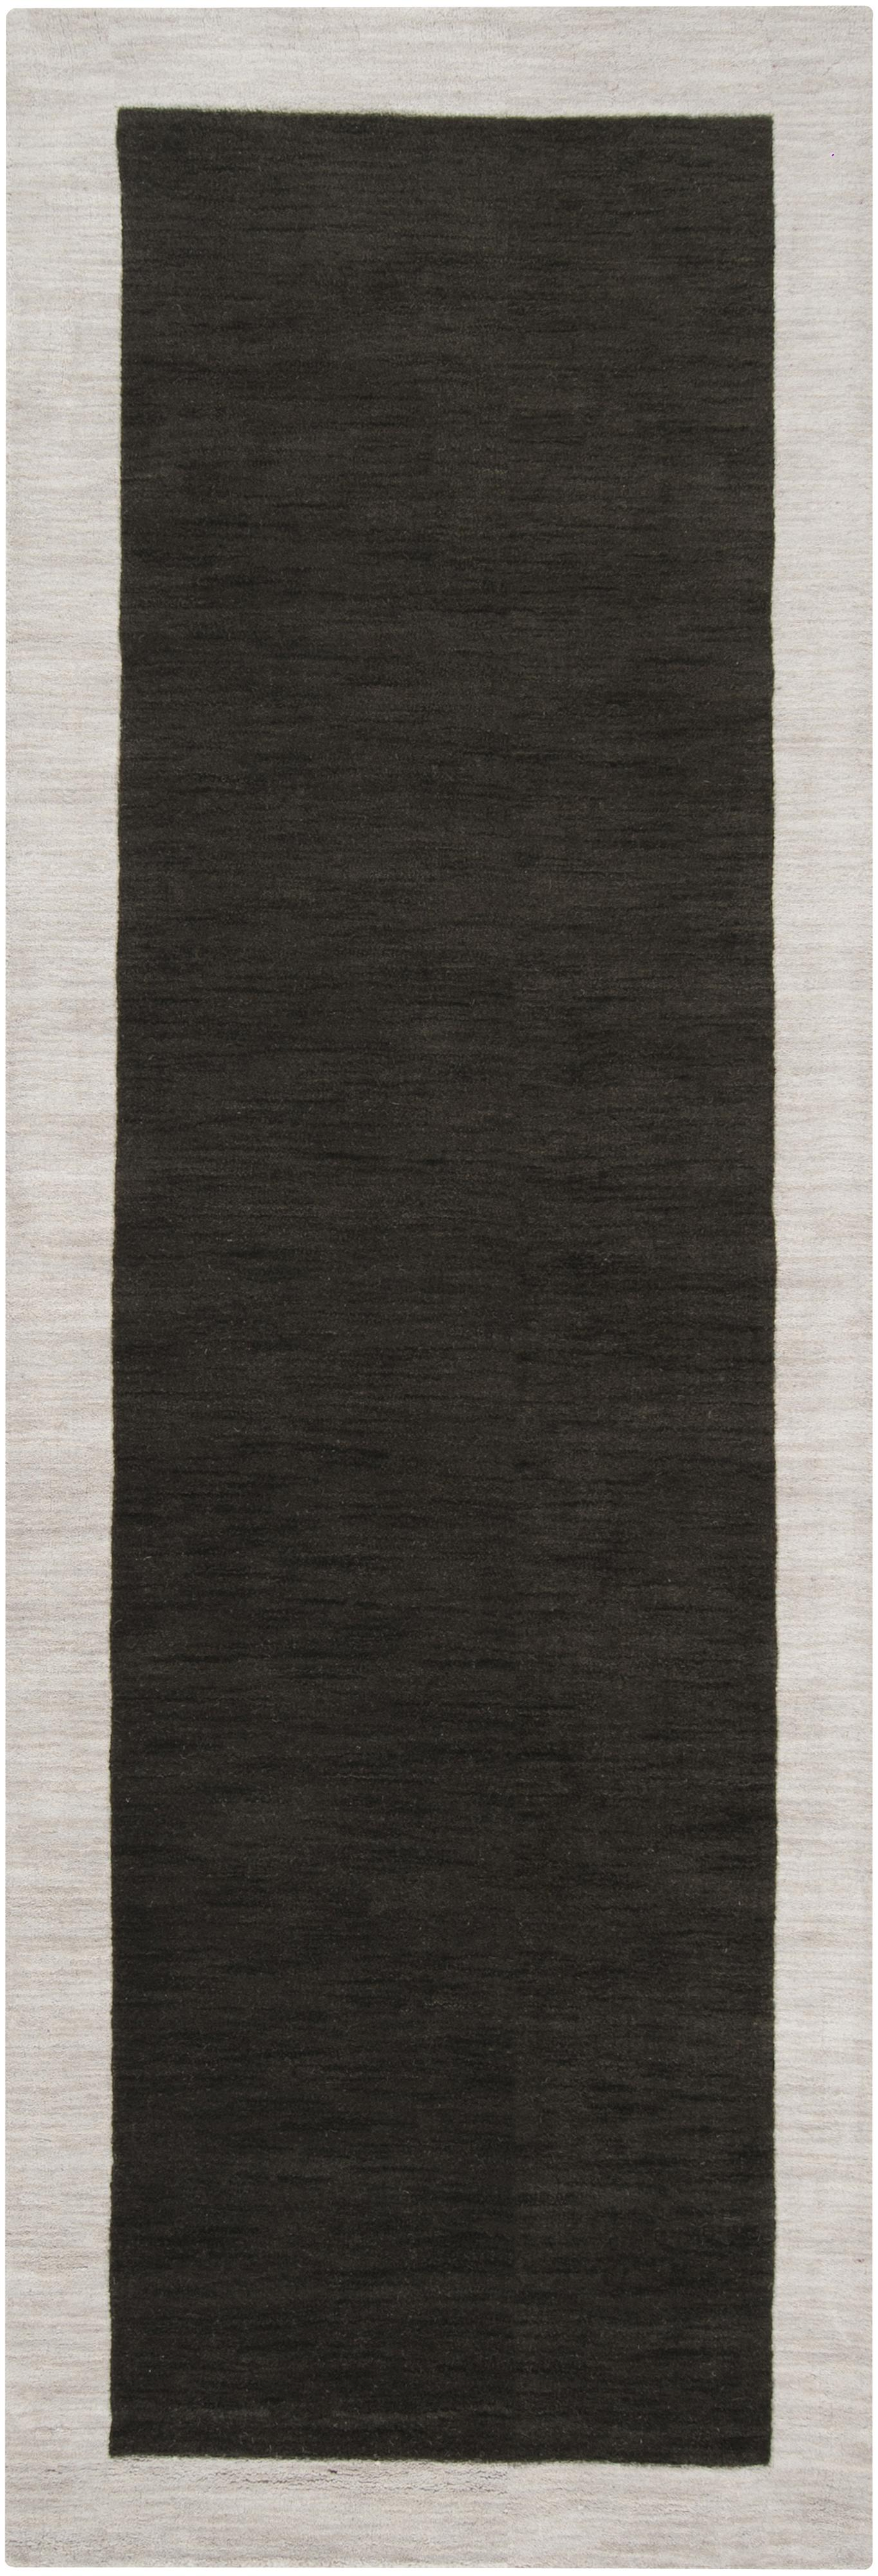 "Surya Madison Square 2'6"" x 8' - Item Number: MDS1004-268"